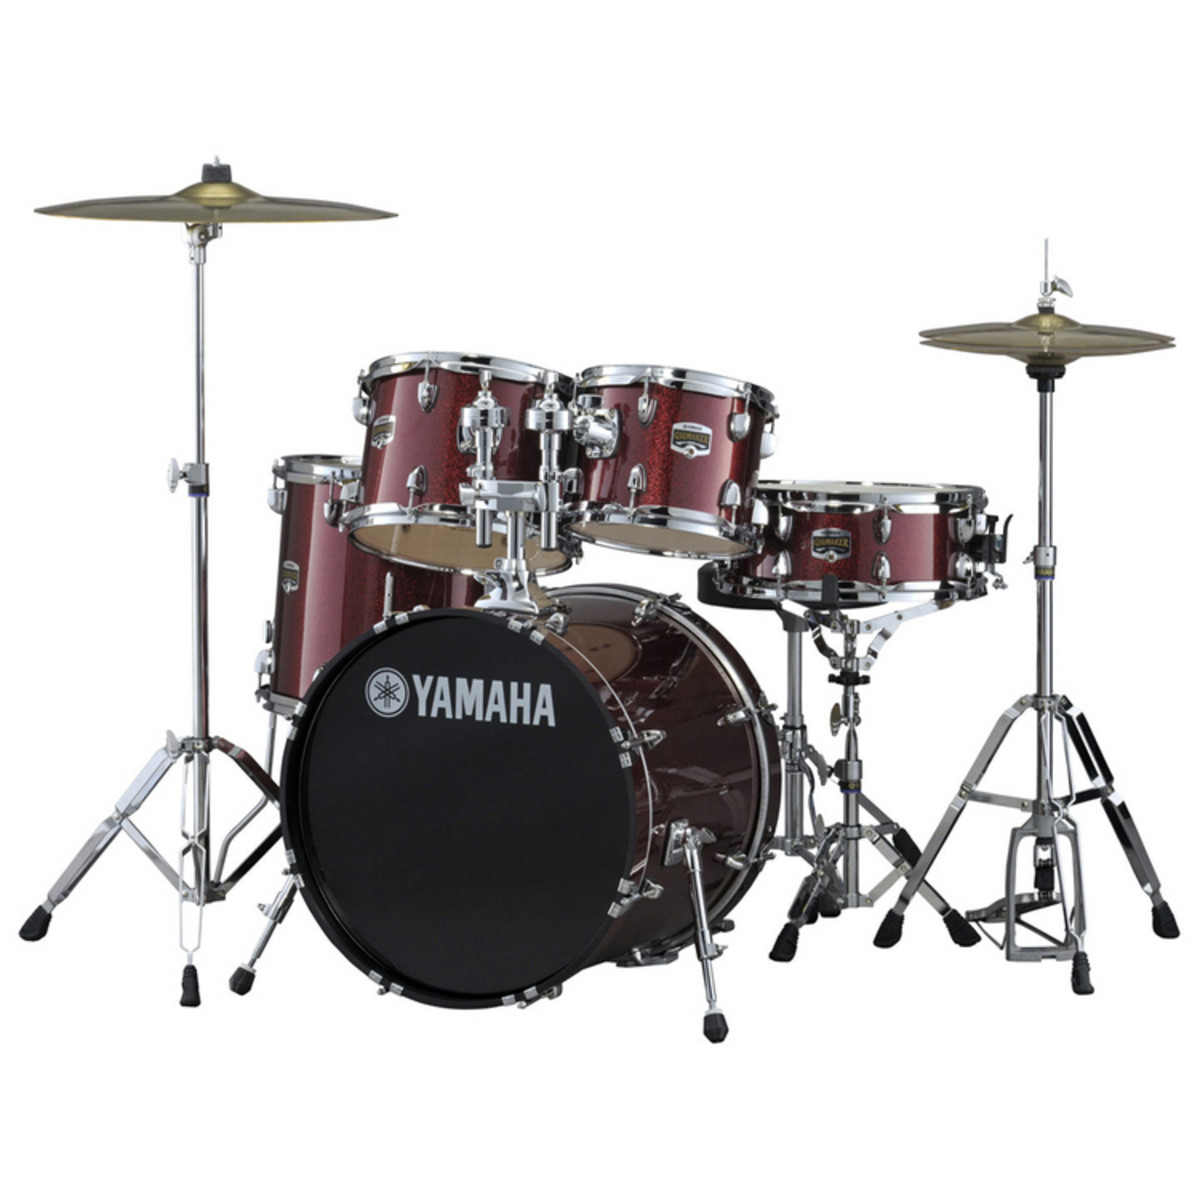 Yamaha Gigmaker Drum Kit Review